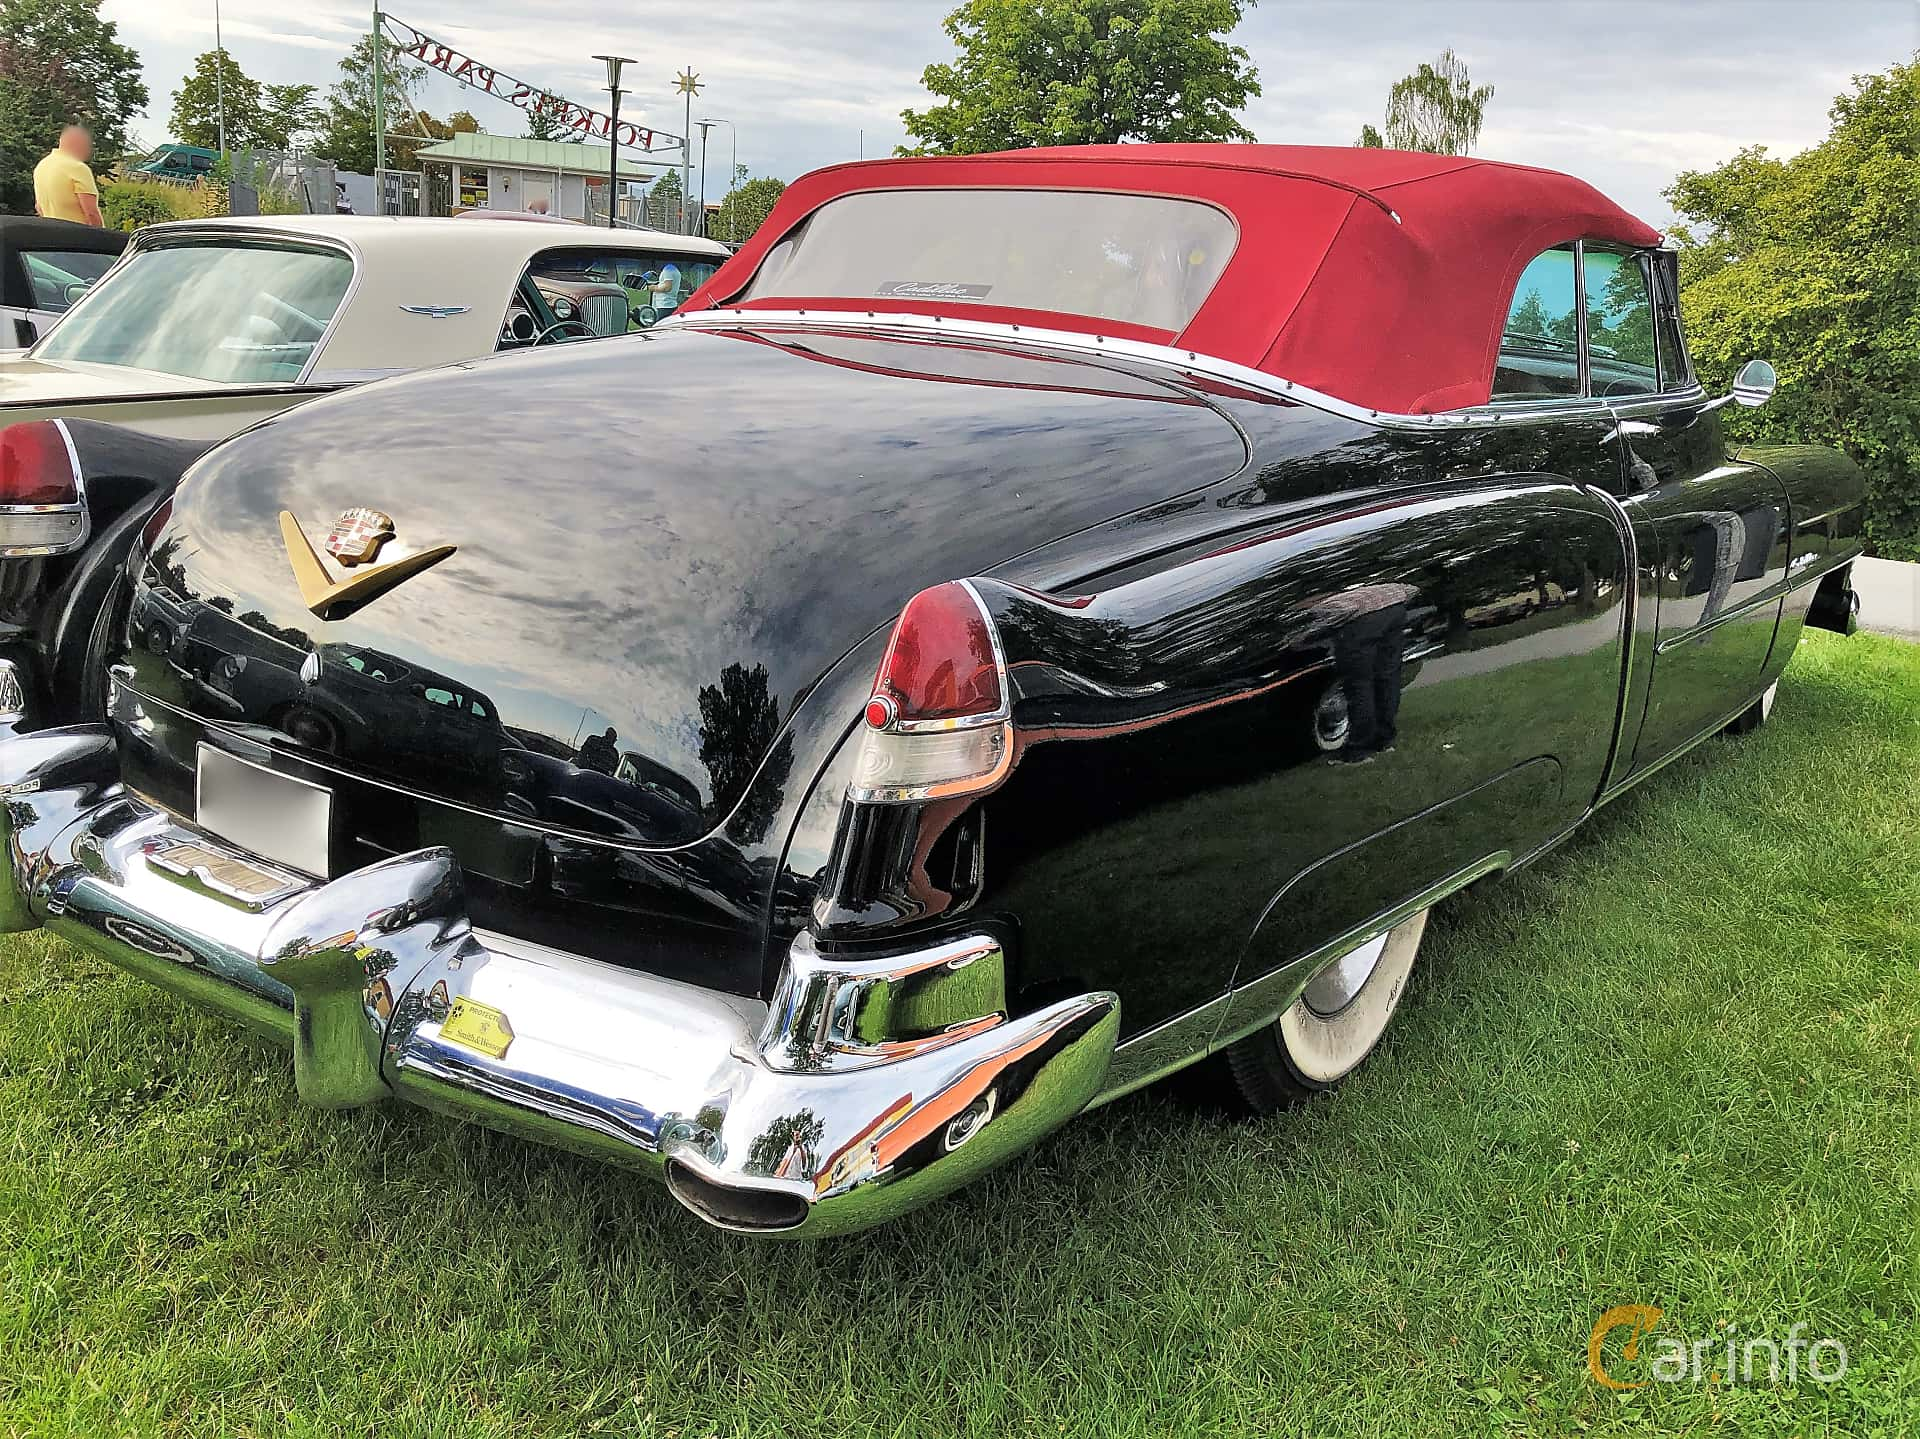 Back/Side of Cadillac Sixty-Two Convertible 5.4 V8 Hydra-Matic, 193ps, 1952 at Bil & MC-träffar i Huskvarna Folkets Park 2019 vecka 32 tema Hot Rods